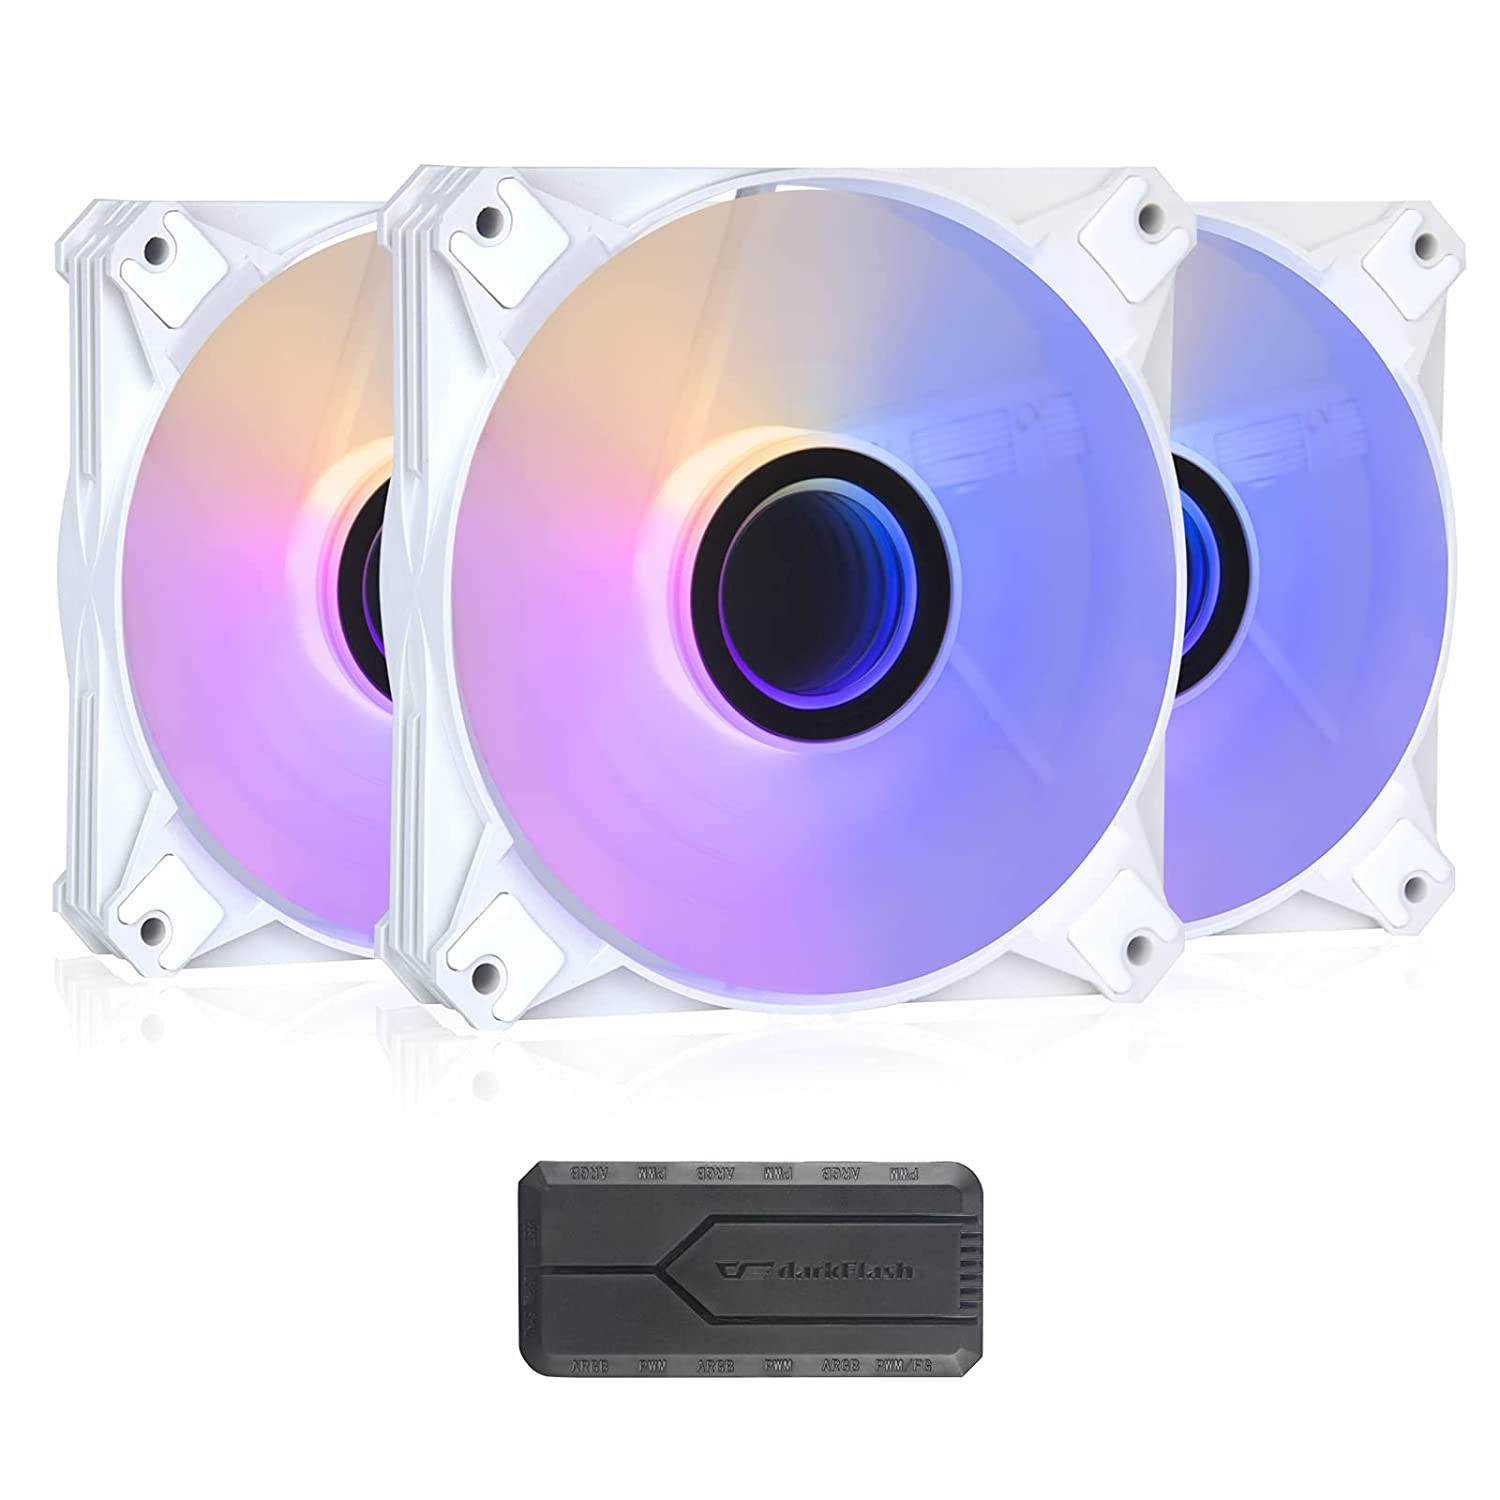 darkflash Large-scale sale INF8 List price 120mm ARGB PWM Case with Pc C Fans Controller for